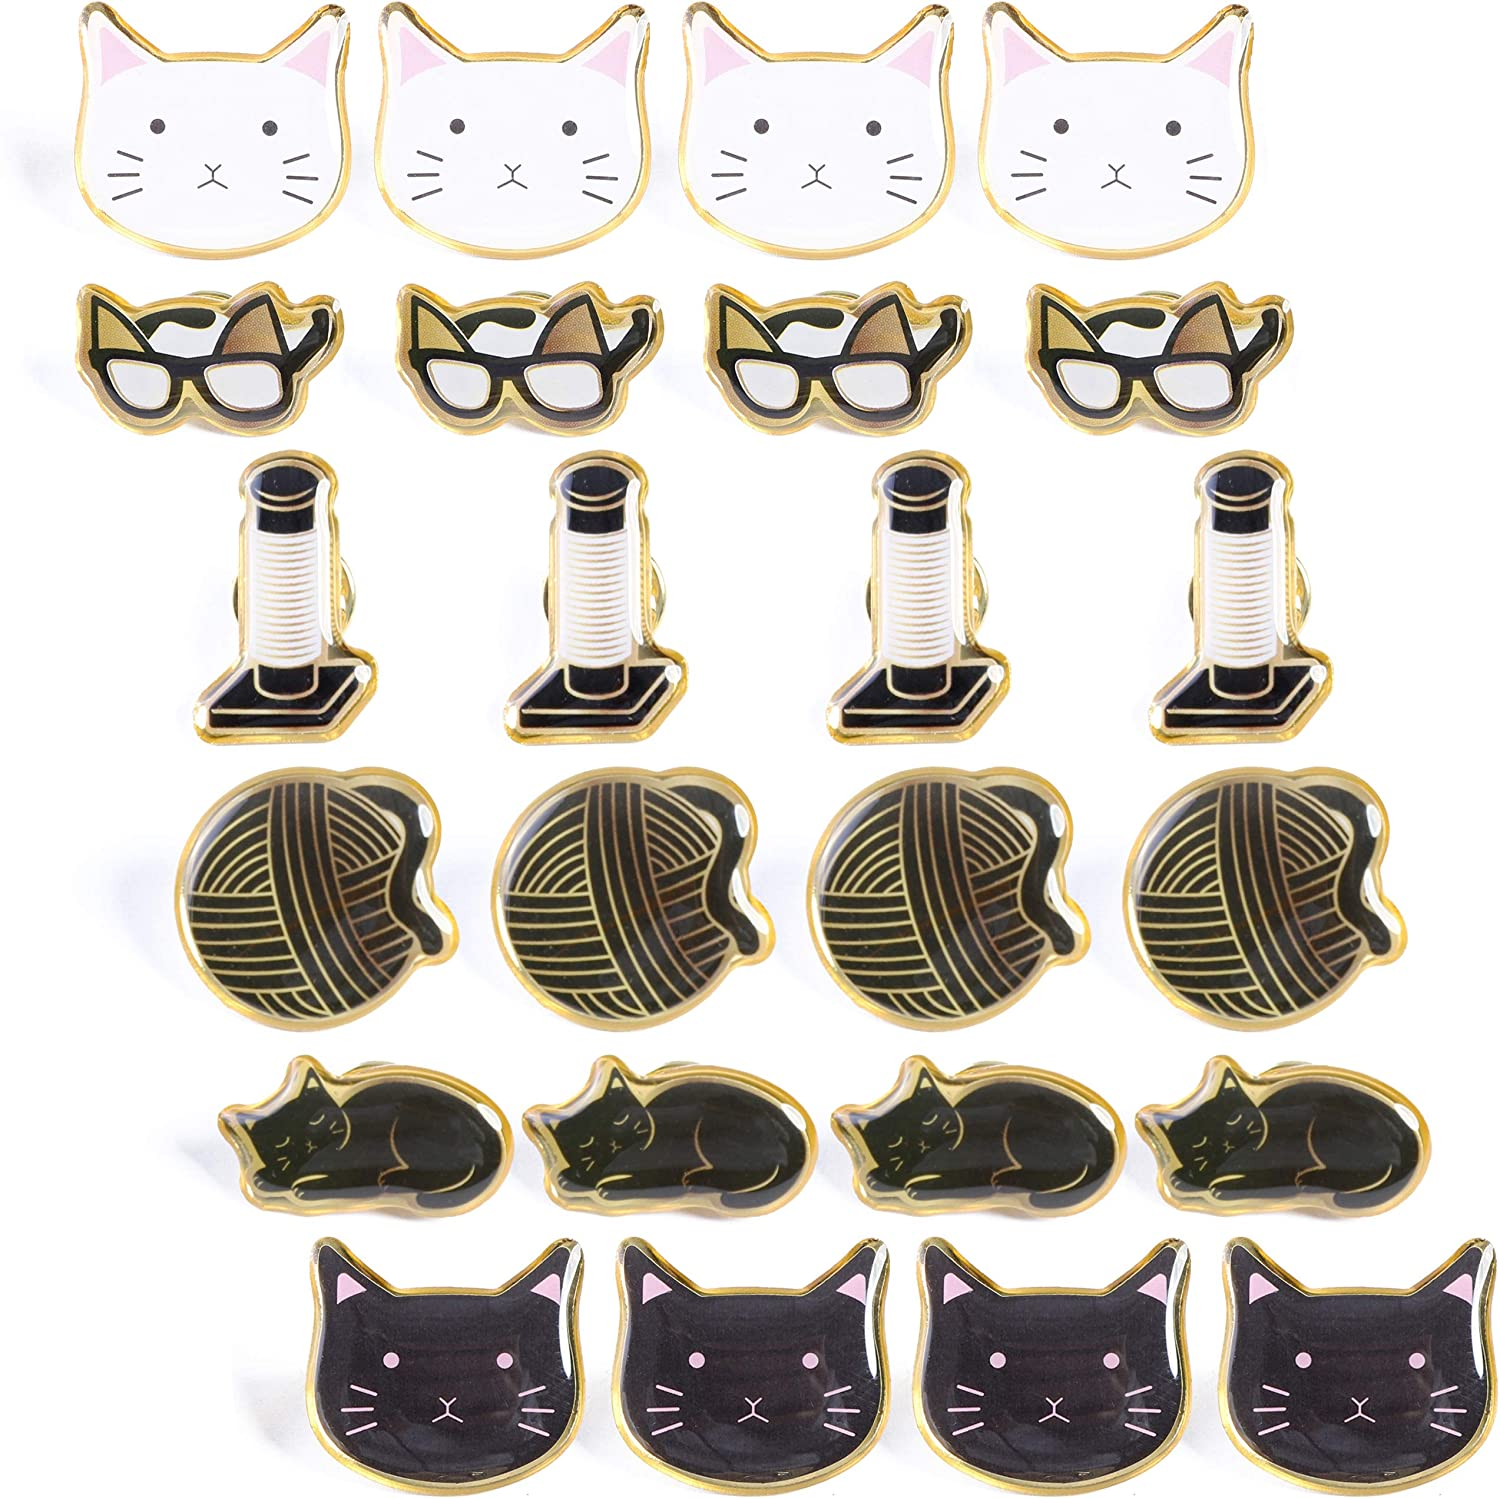 Cat Brooch Lapel Pins (24 Pack)